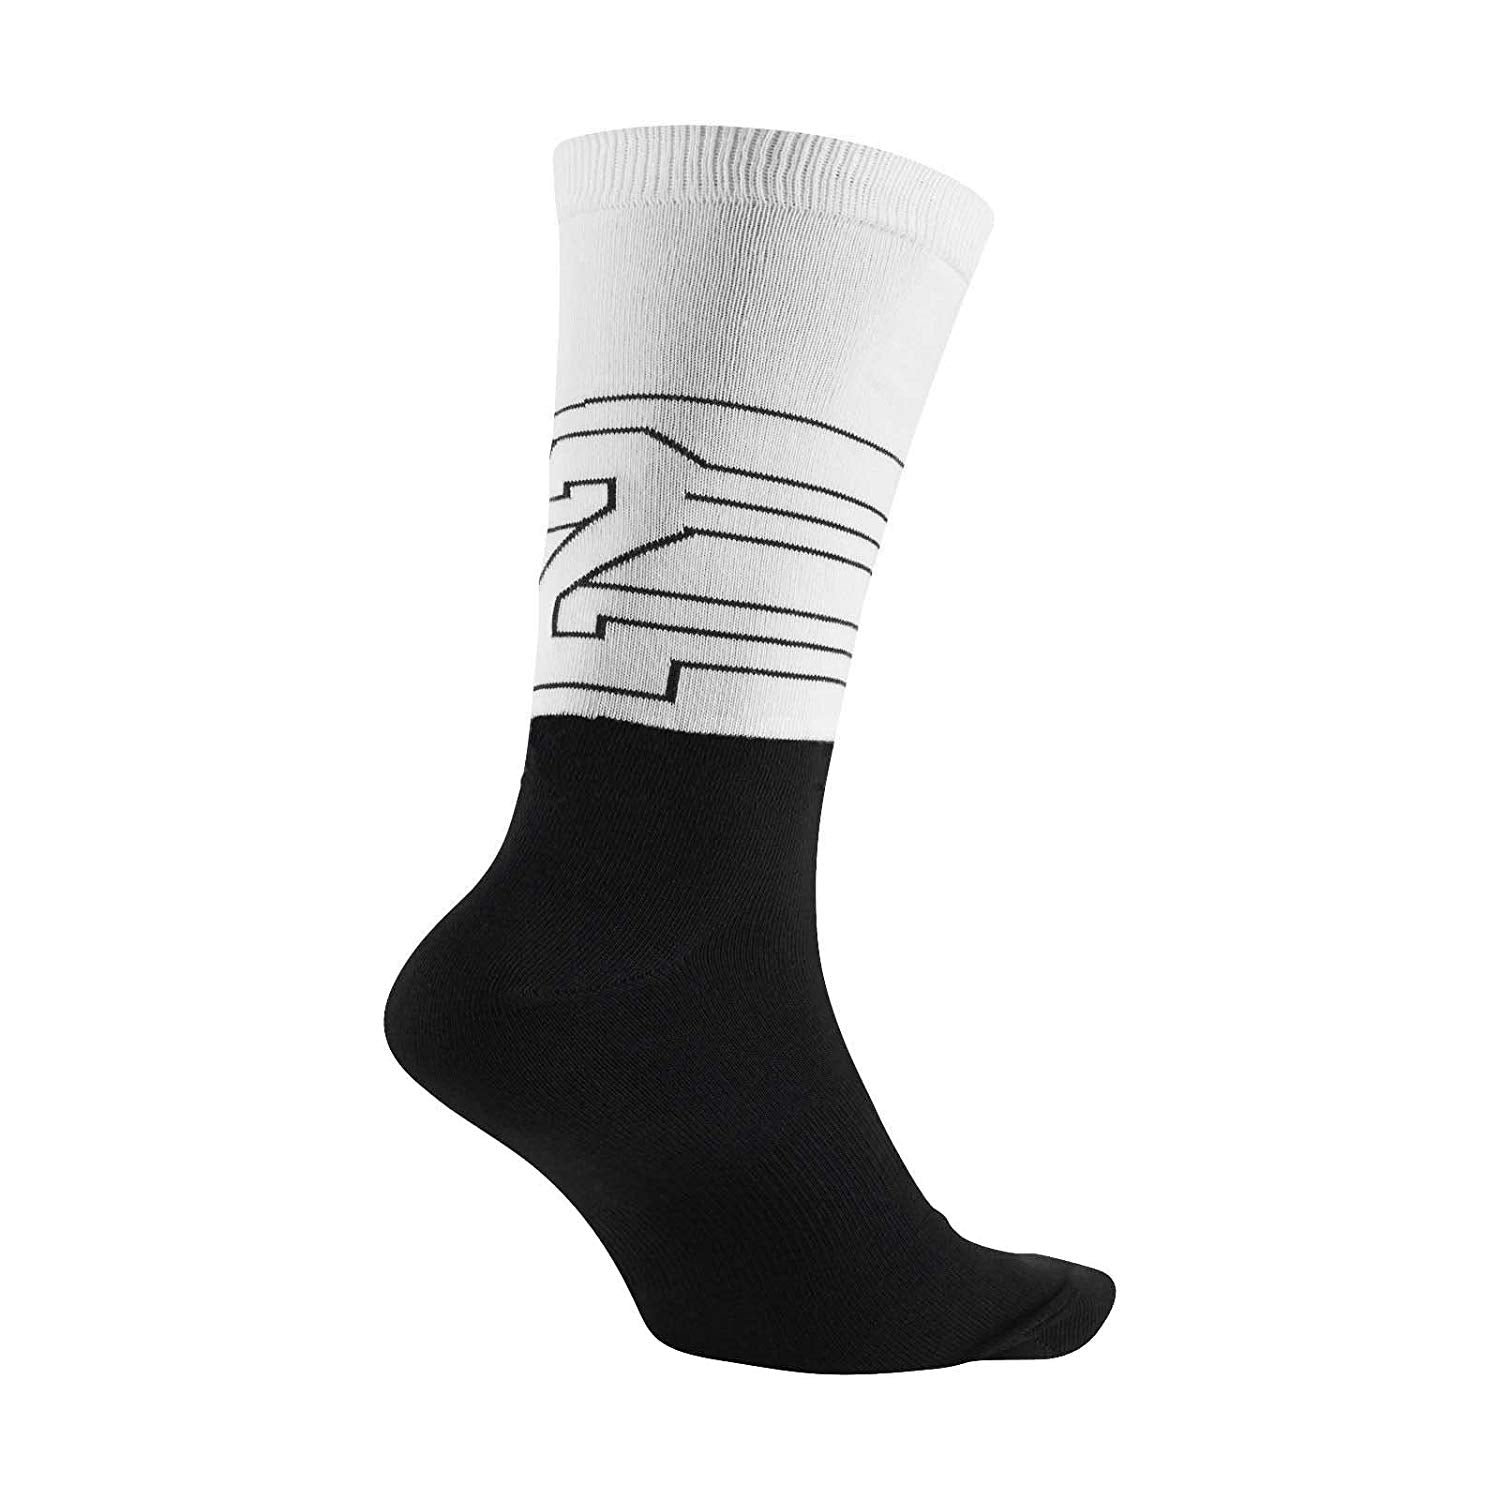 Nike Jordan Retro 13 Black/White Men's Crew Socks Size Large (8-12_